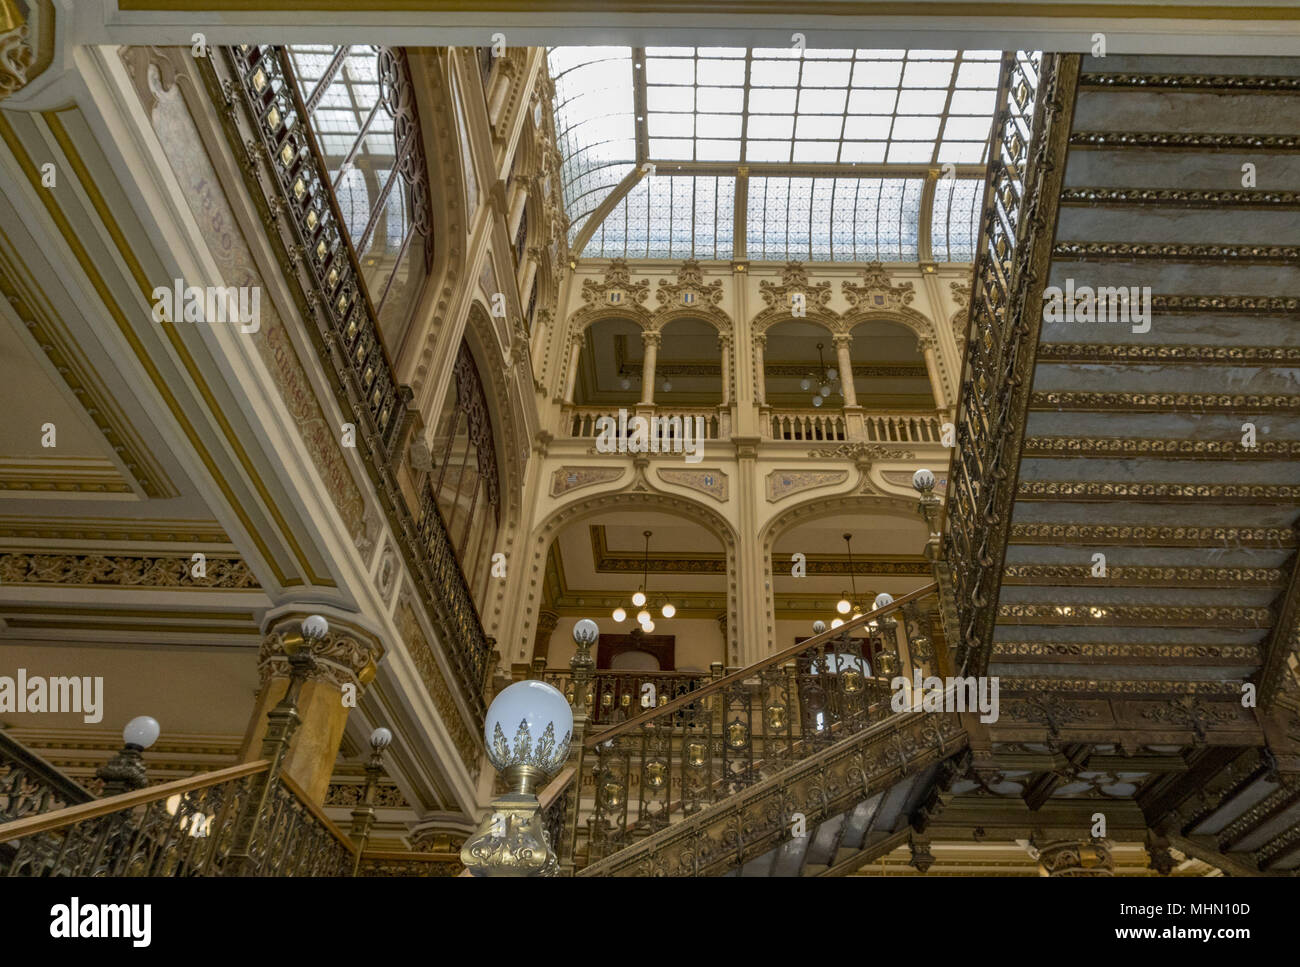 MEXICO CITY, MEXICO - NOVEMBER 5 2017- The Postal Palace was built at the beginning of the 1900 and was the most modern of the time, with very eclecti - Stock Image